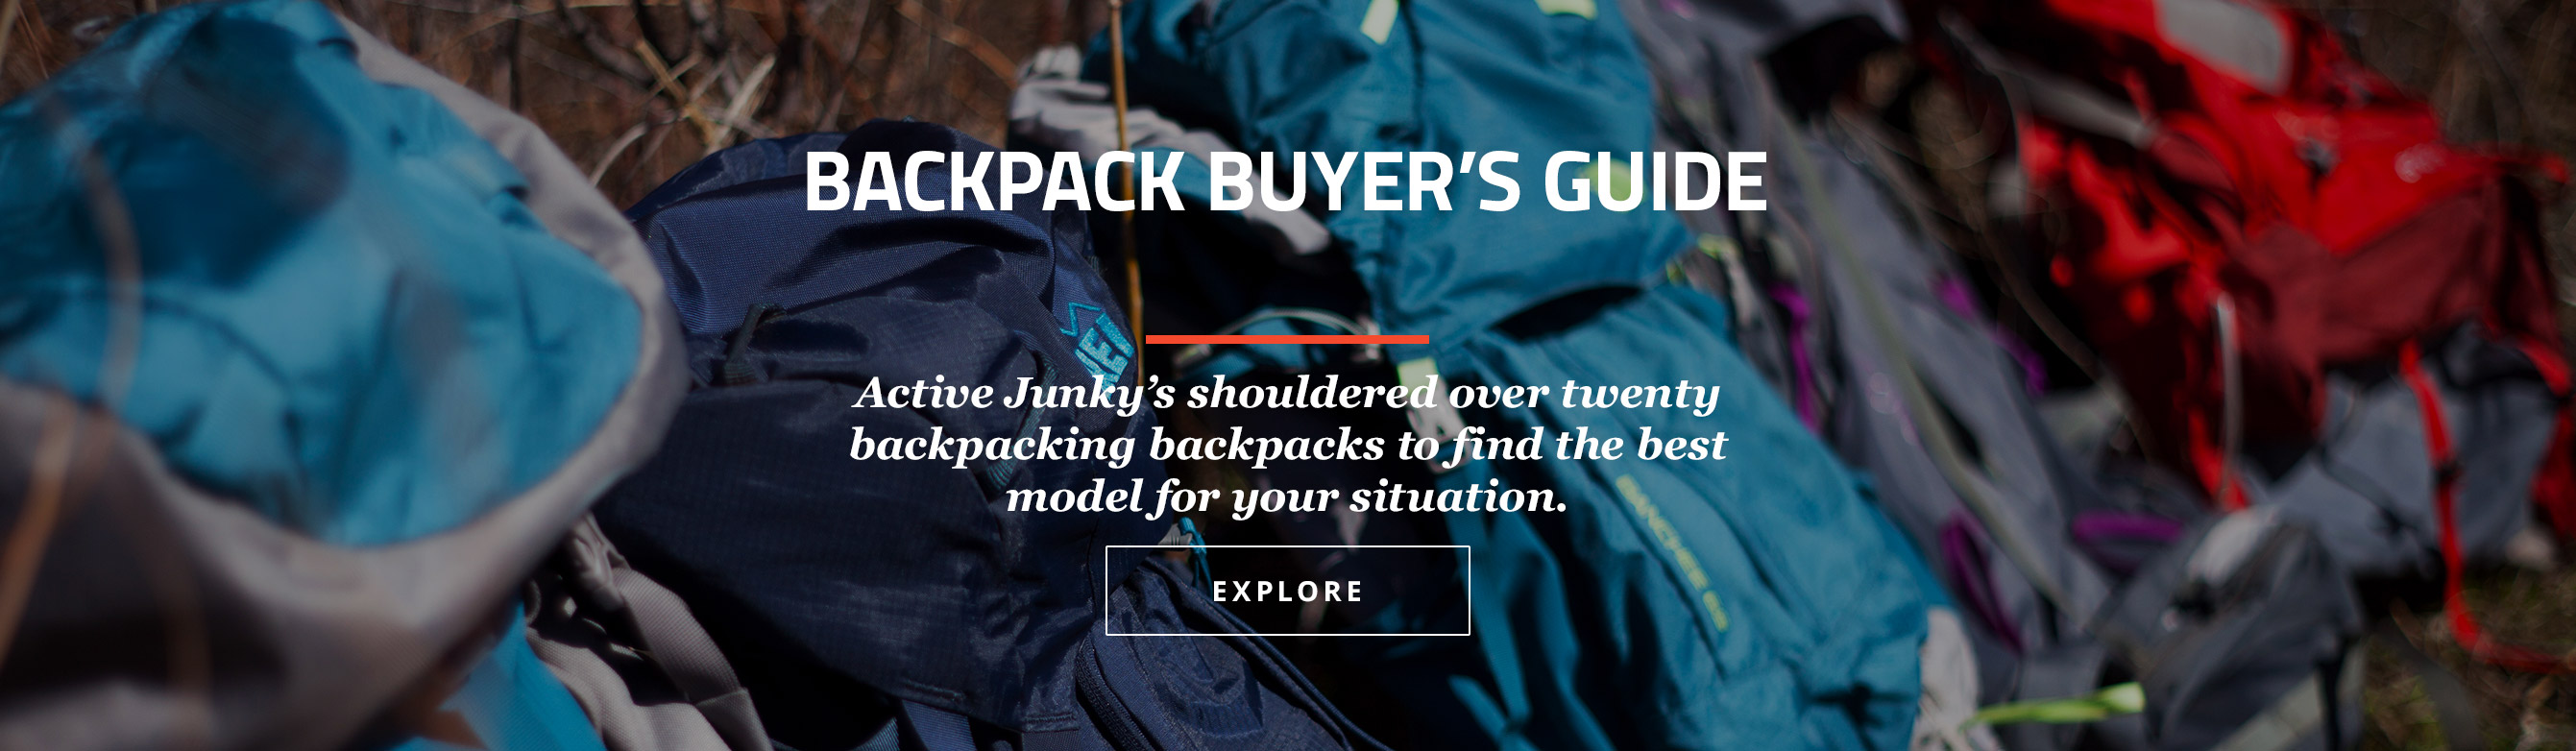 Backpack Buyer's Guide